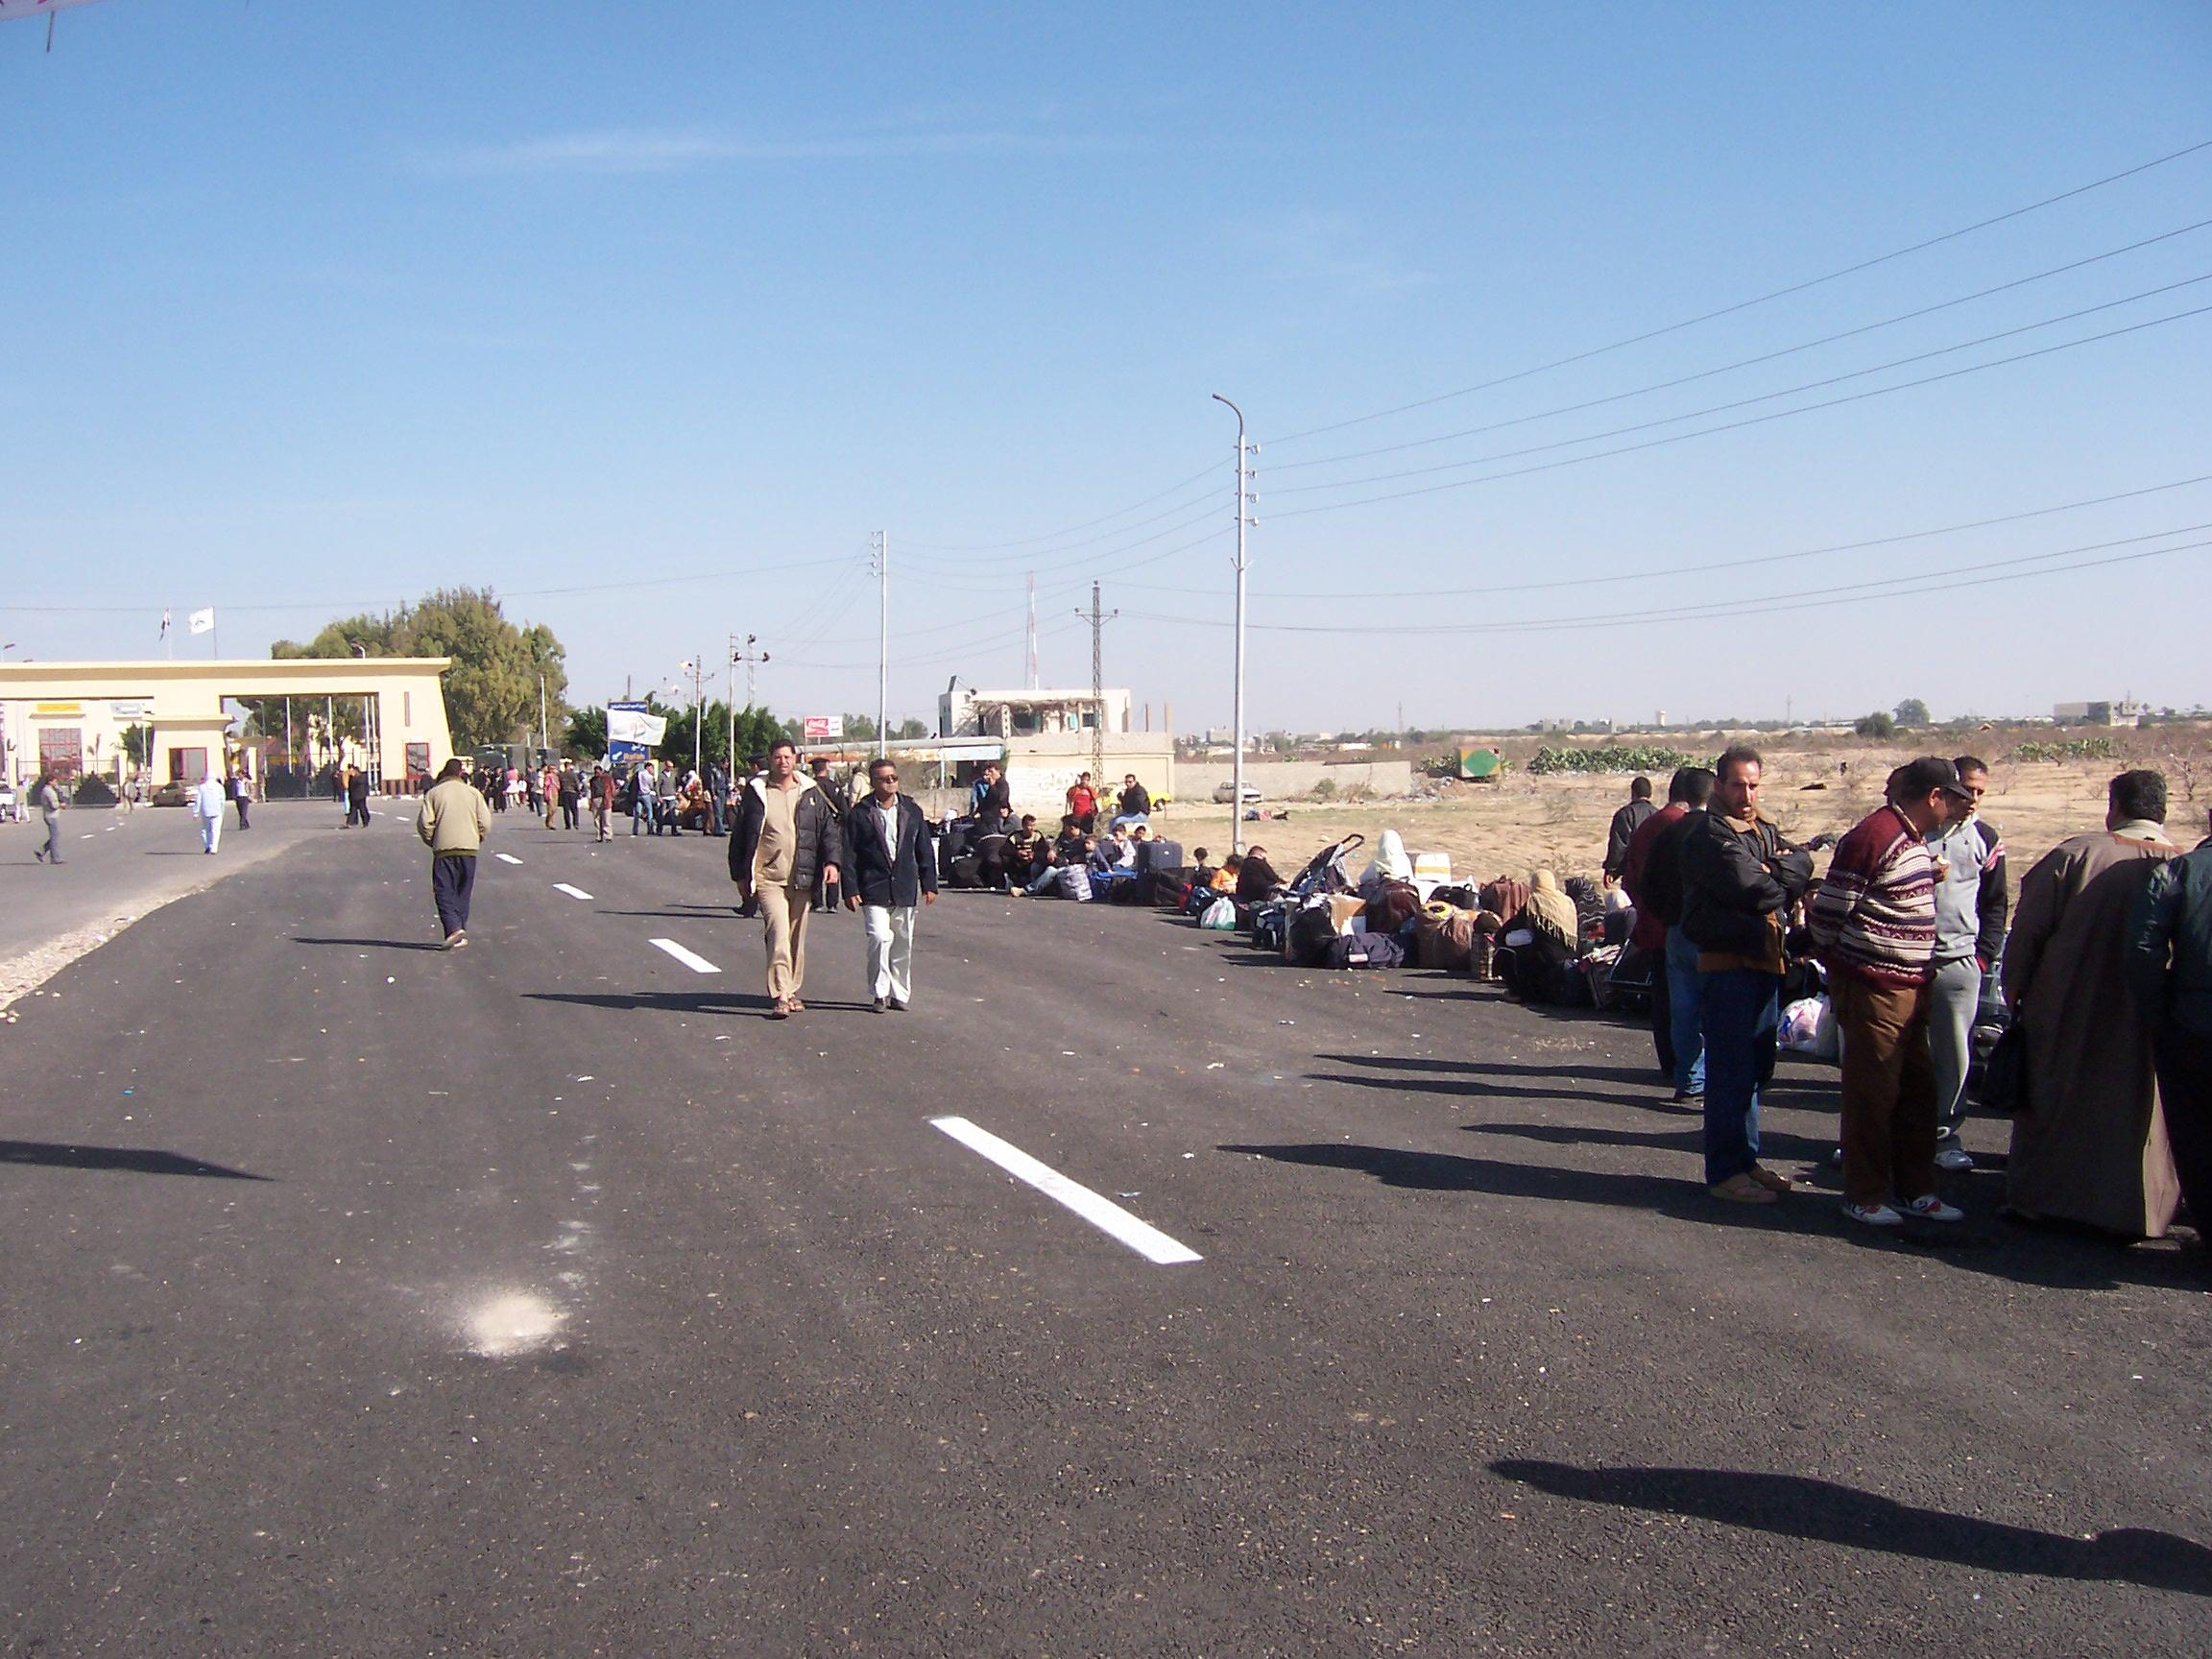 Rafah - رفح : The border crossing with Egypt, look at the queue